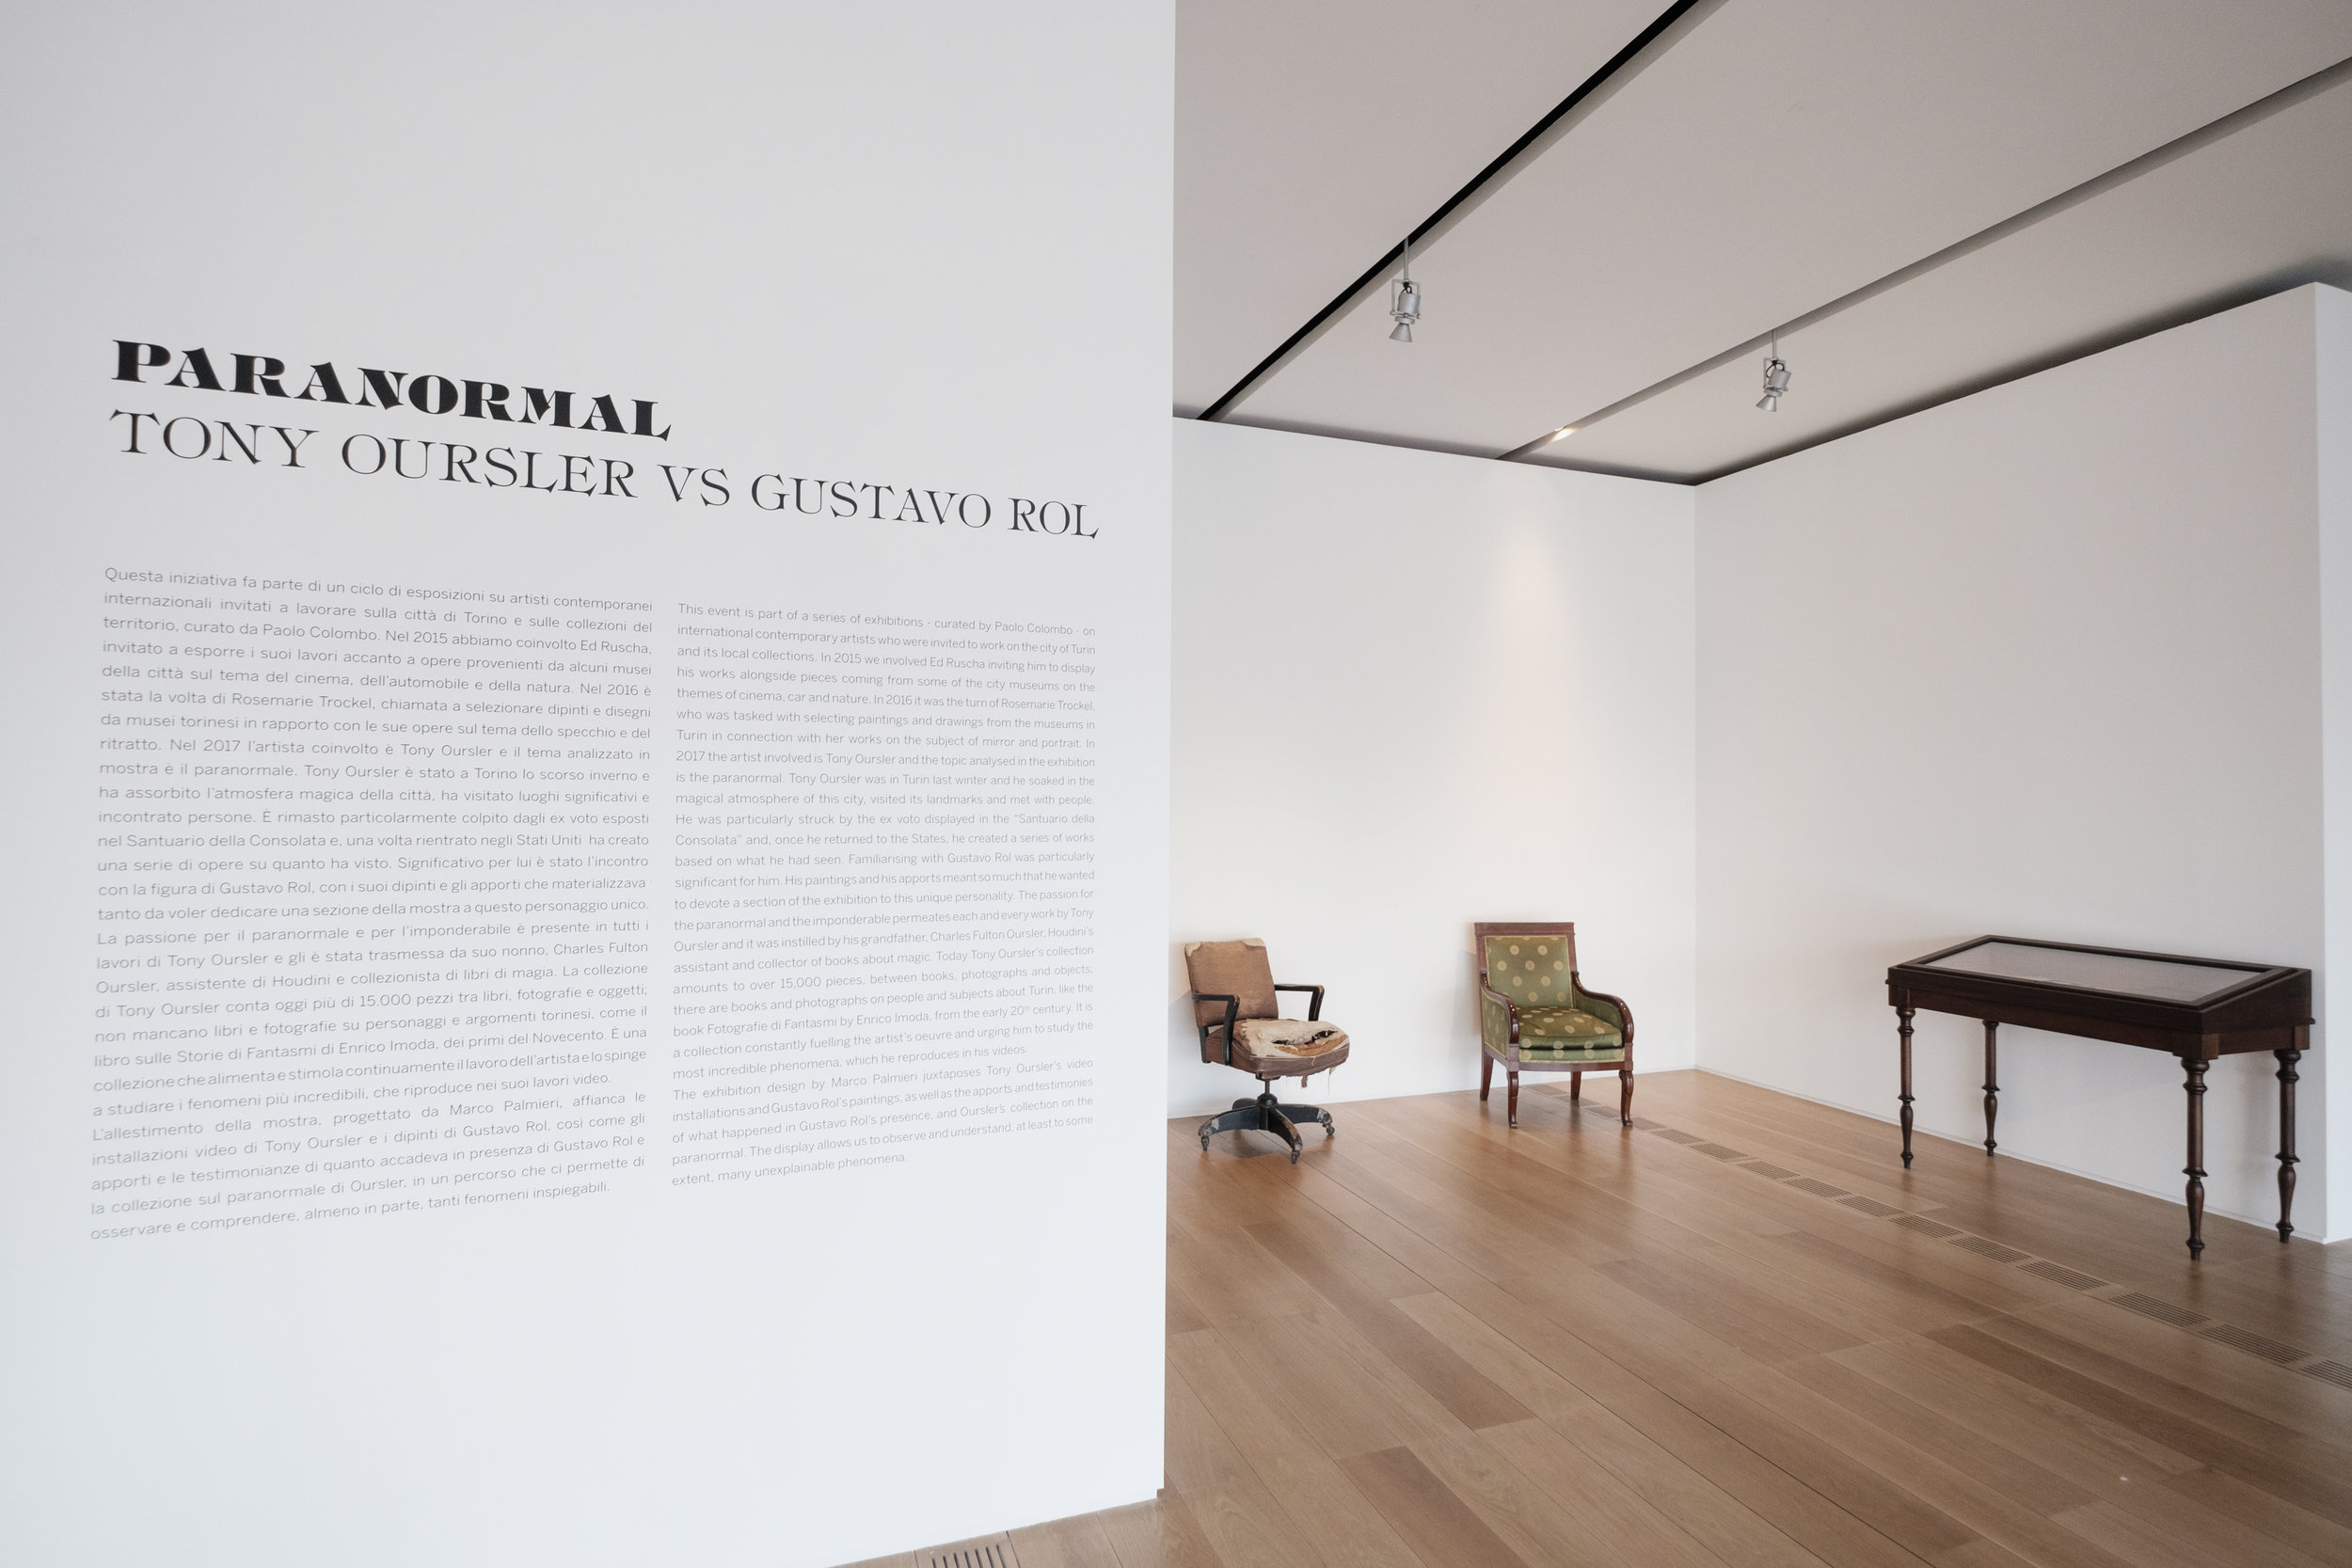 Installation view with Fulton Ourlser and Gustavo Rol's chairs